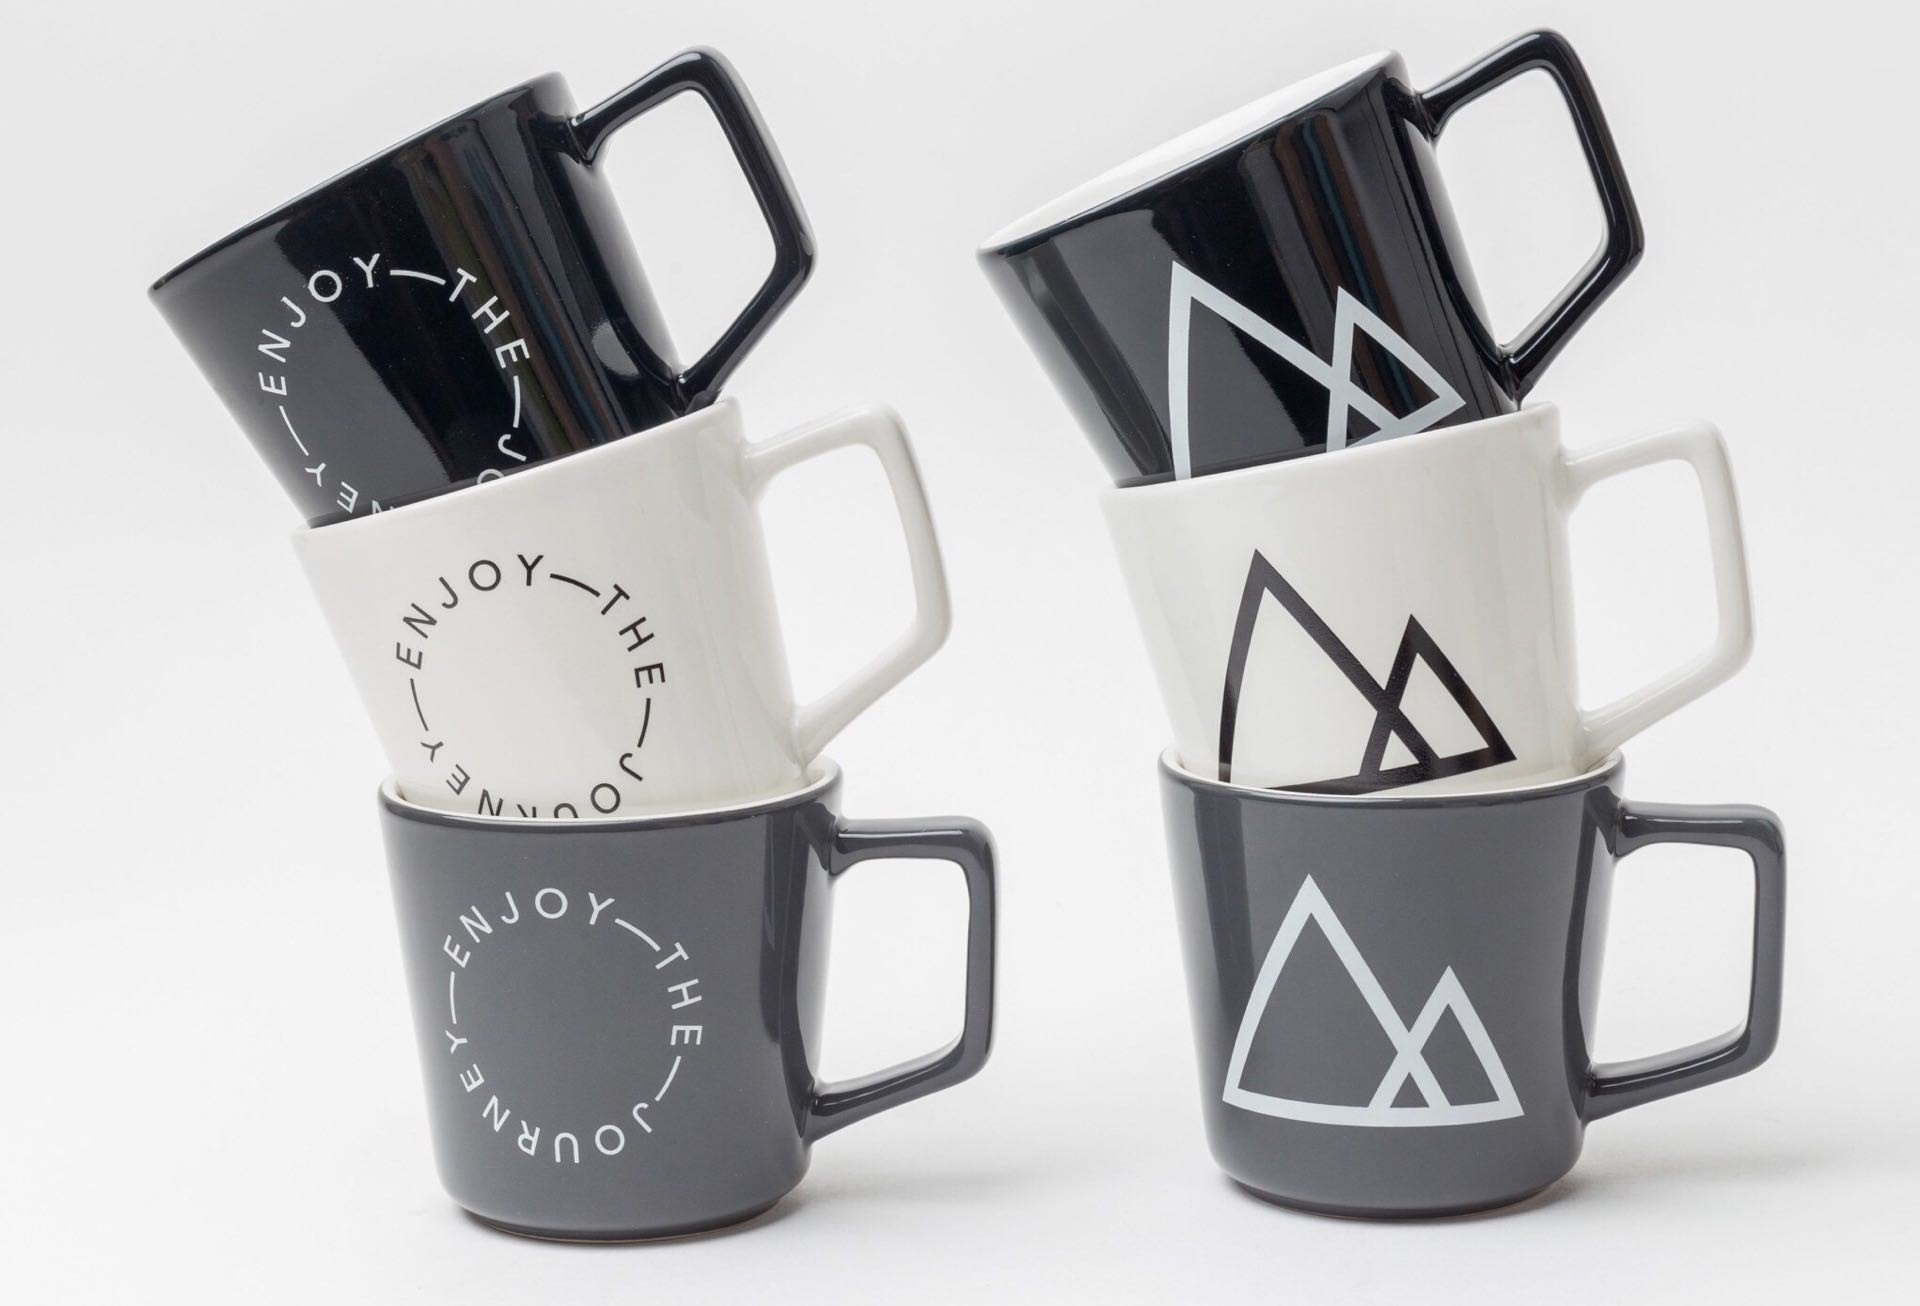 Ugmonk's latest set of coffee mugs. ($119 for the full set; other prices listed below)